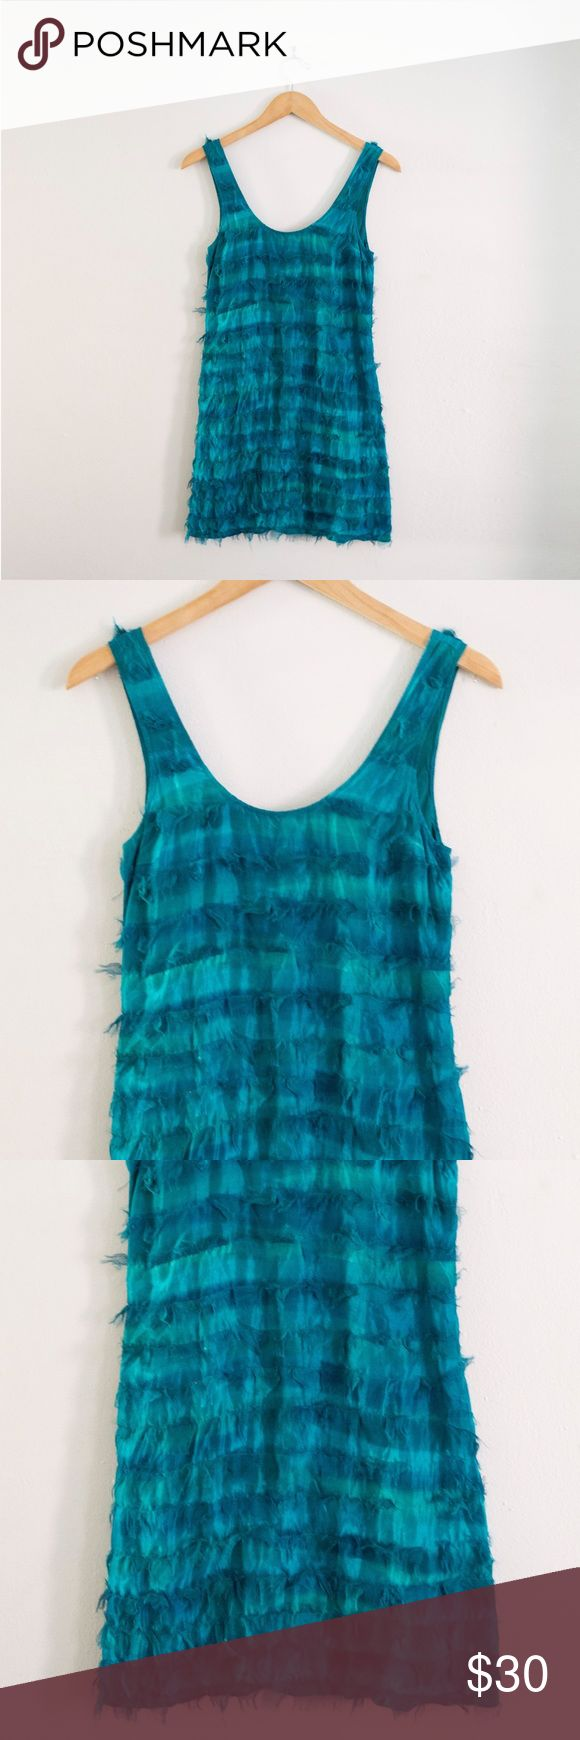 Frock by Tracy Reese dress Frock! By Tracy Reese size 2 teal ombré dress. Tracy Reese Dresses